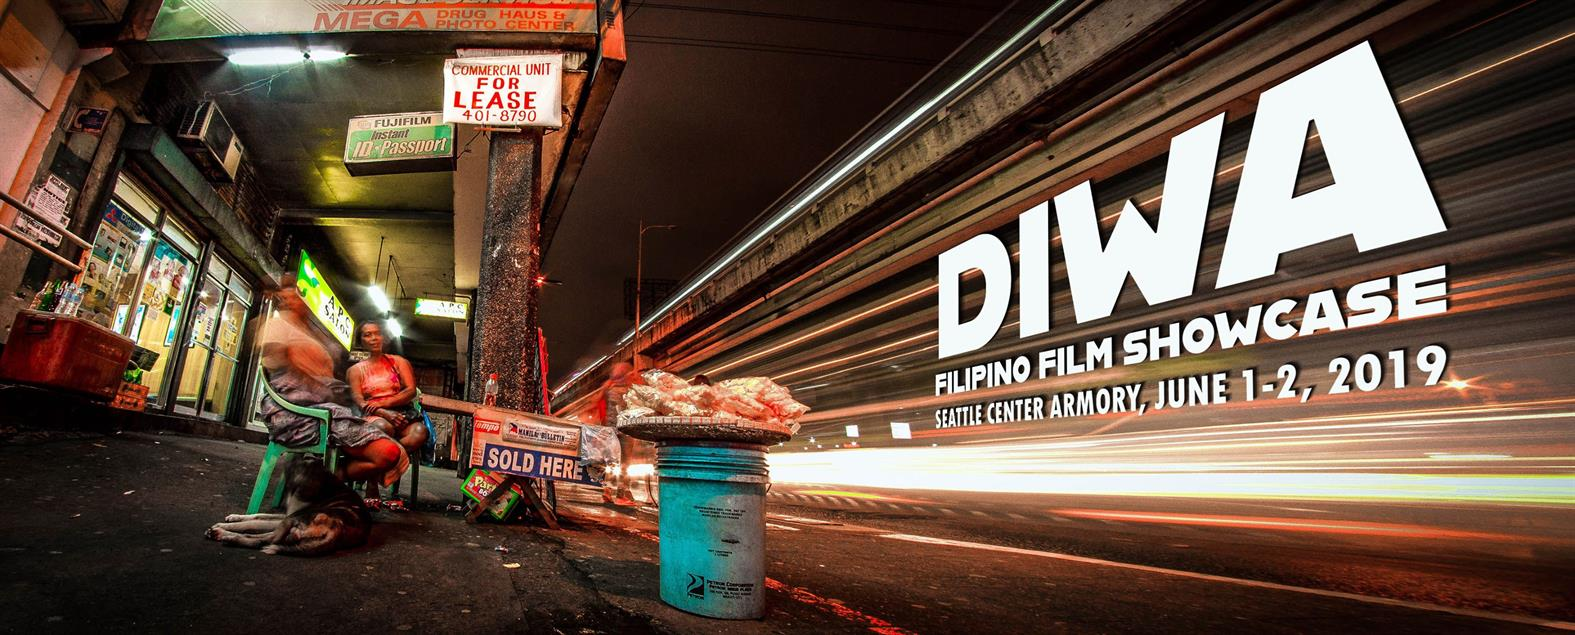 Diwa Filipino Film Festival